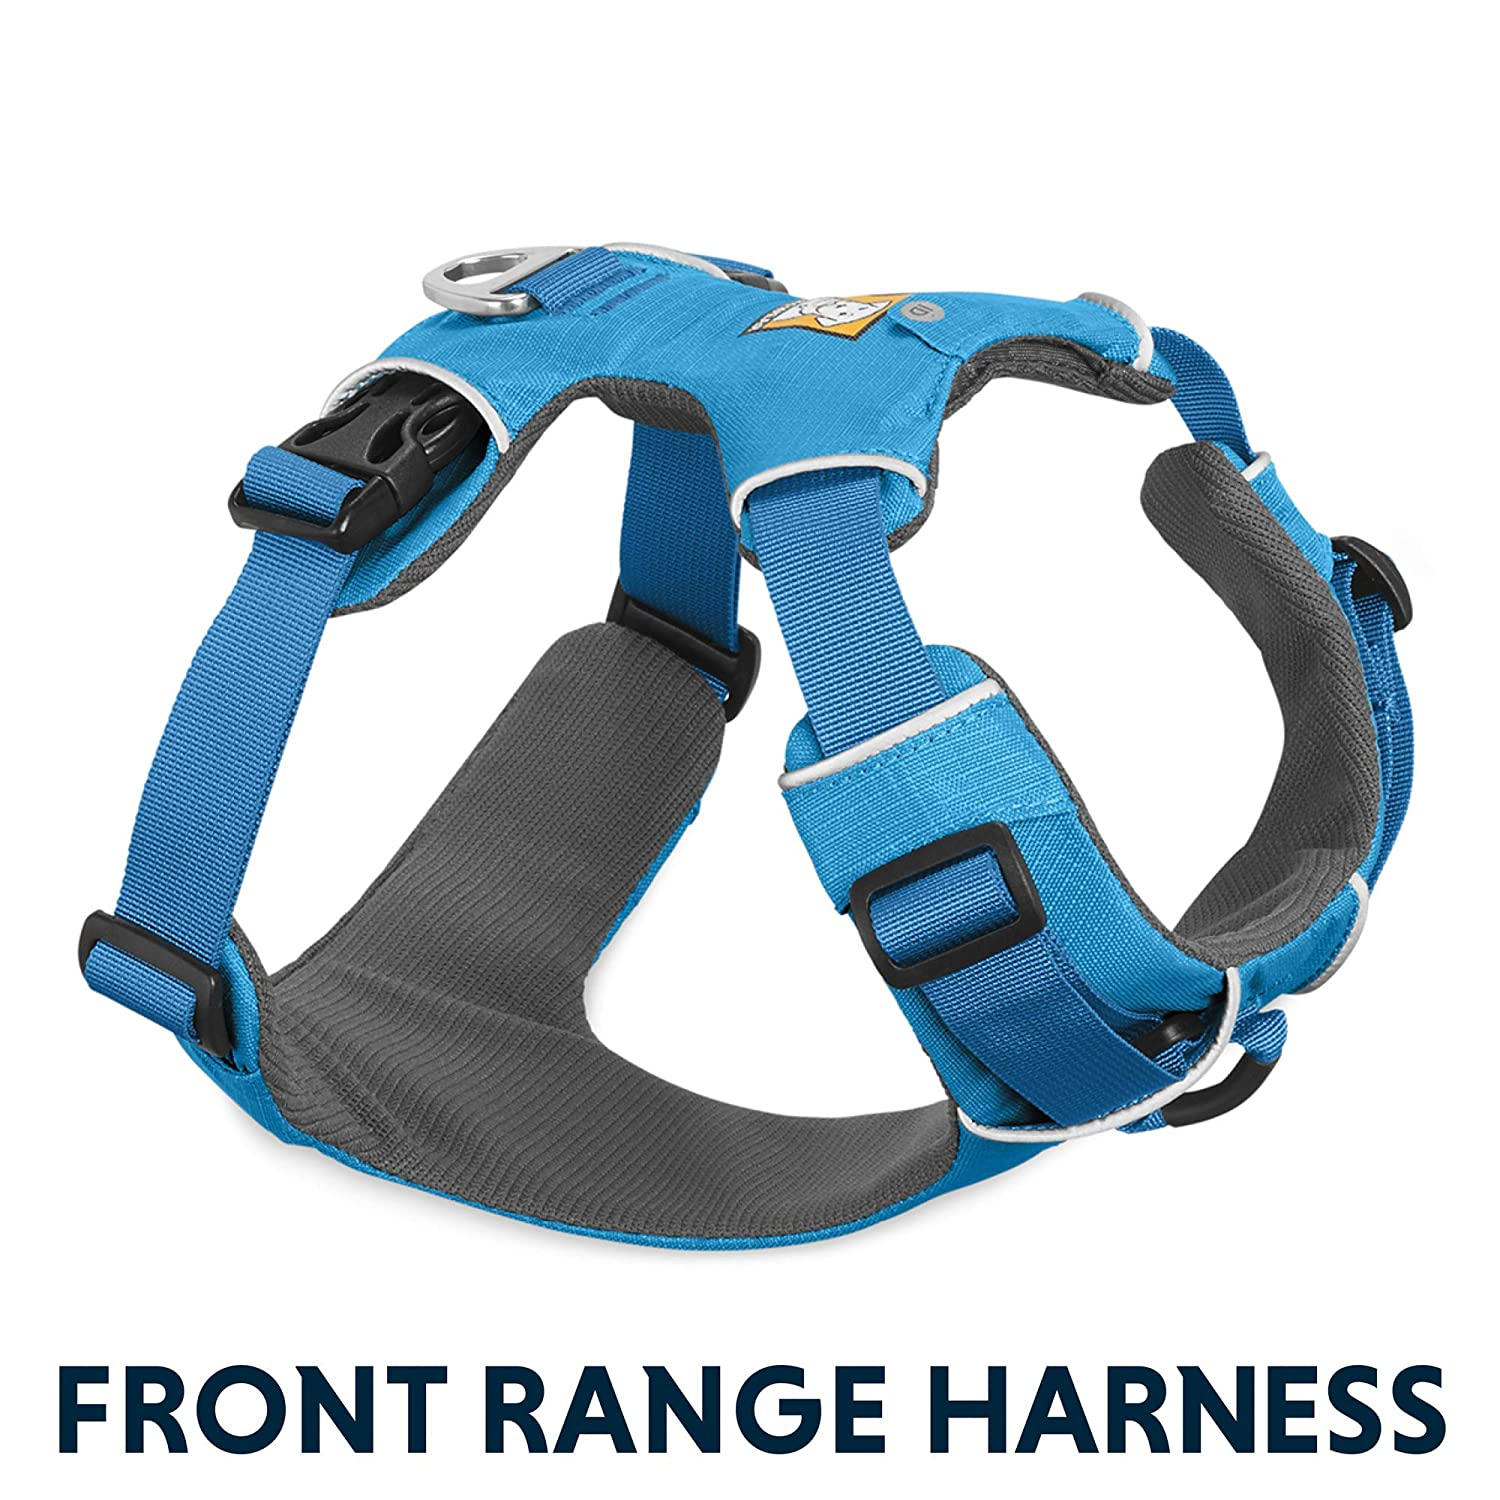 bluee Dusk Medium bluee Dusk Medium RUFFWEAR Front Range, Everyday No Pull Dog Harness with Front Clip, Trail Running, Walking, Hiking, All-Day Wear, bluee Dusk, Medium